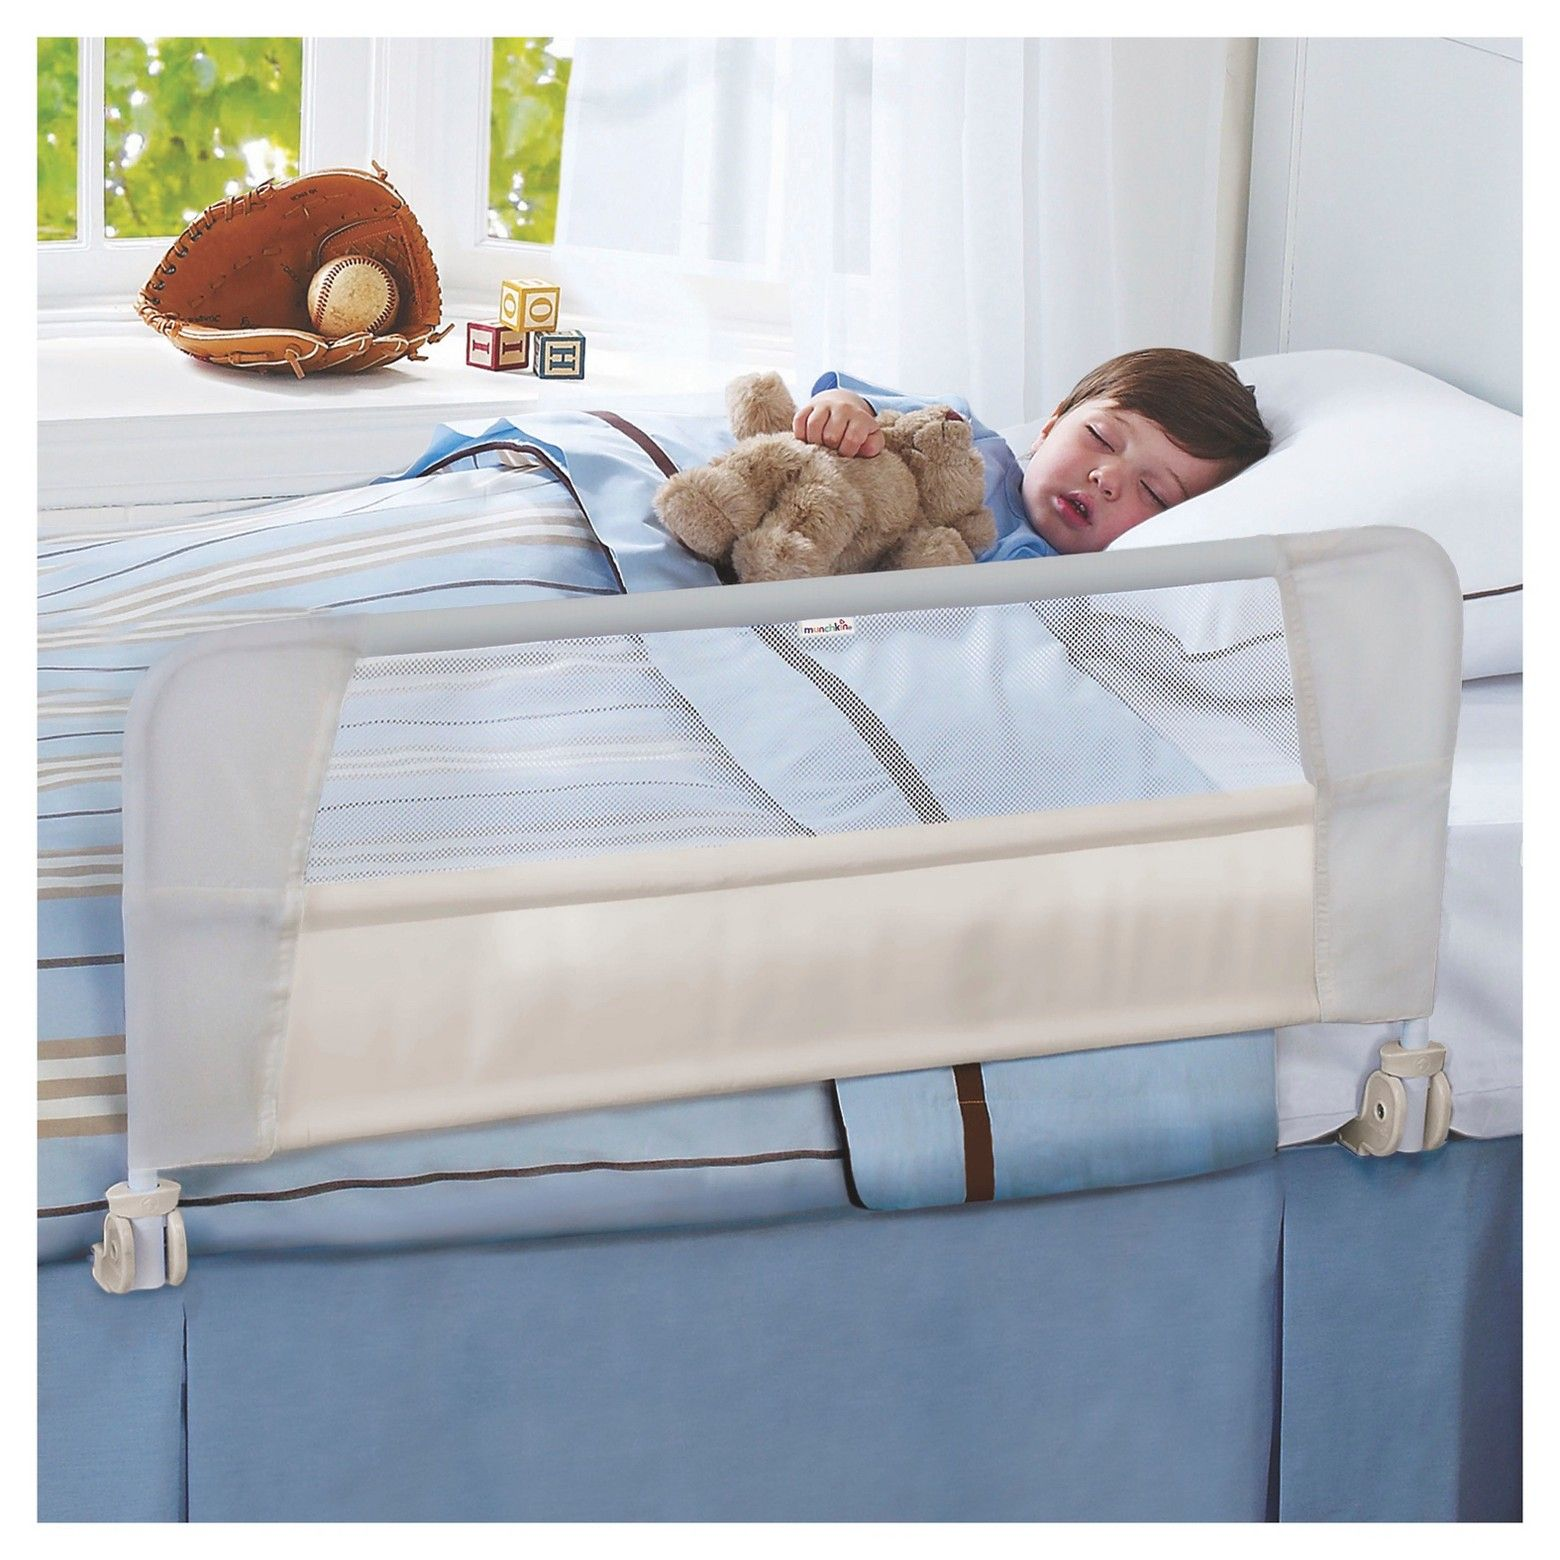 Munchkin Safety Toddler Bed Rail Bed Rails For Toddlers Diy